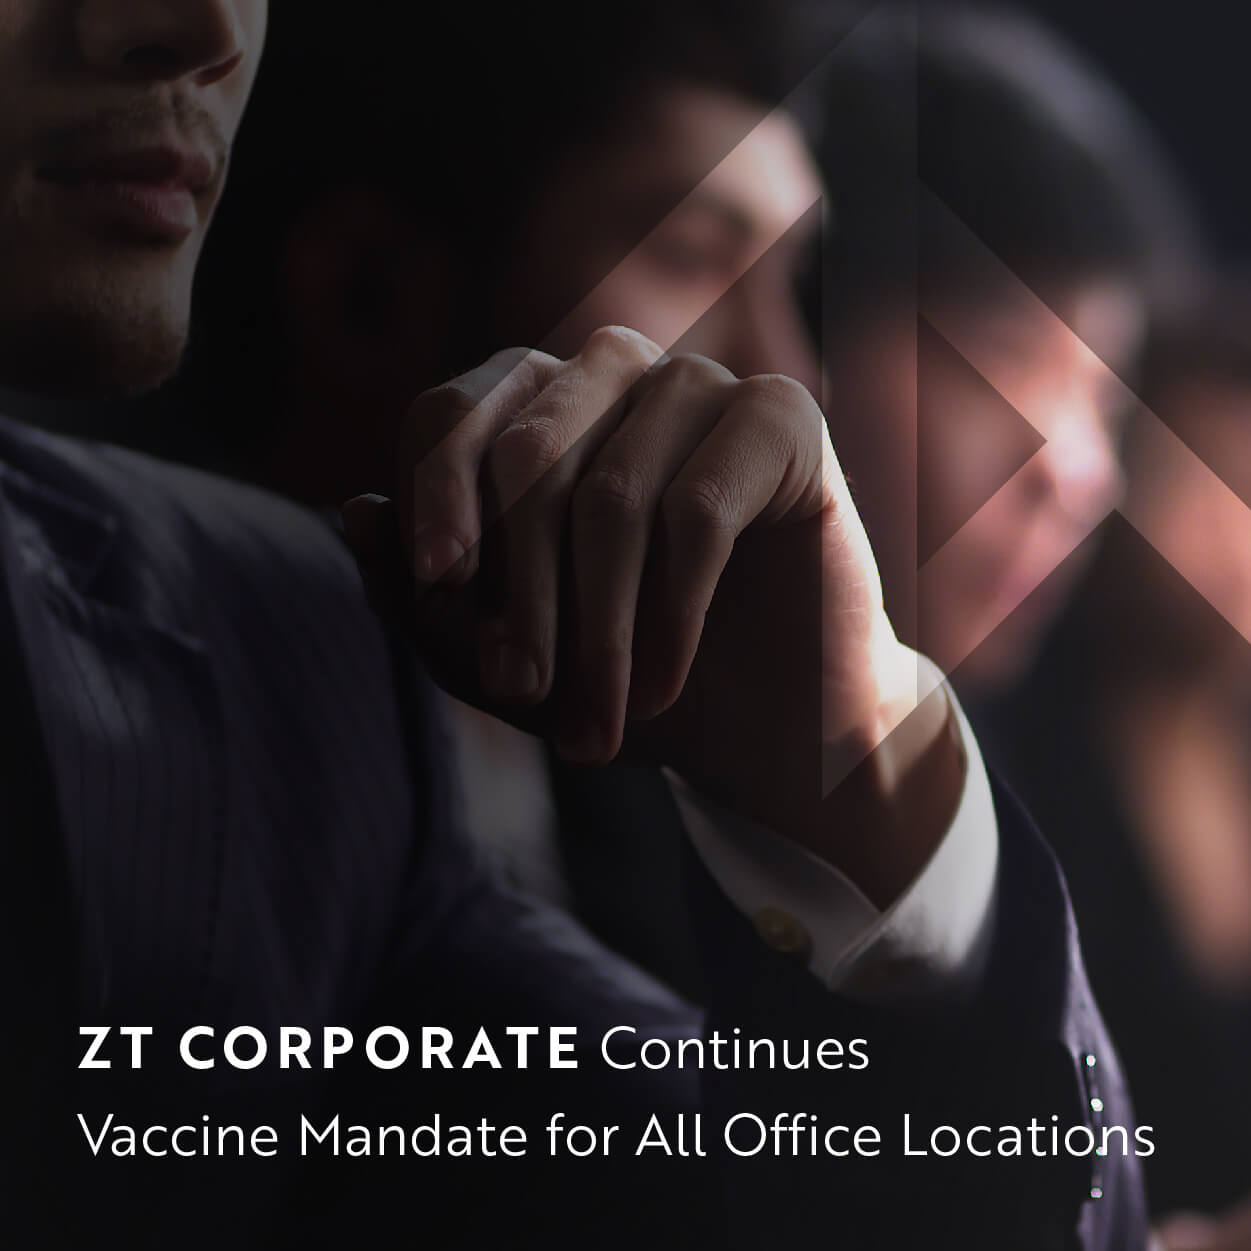 What Gov. Abbott's ban on vaccine requirements means for Texas workers